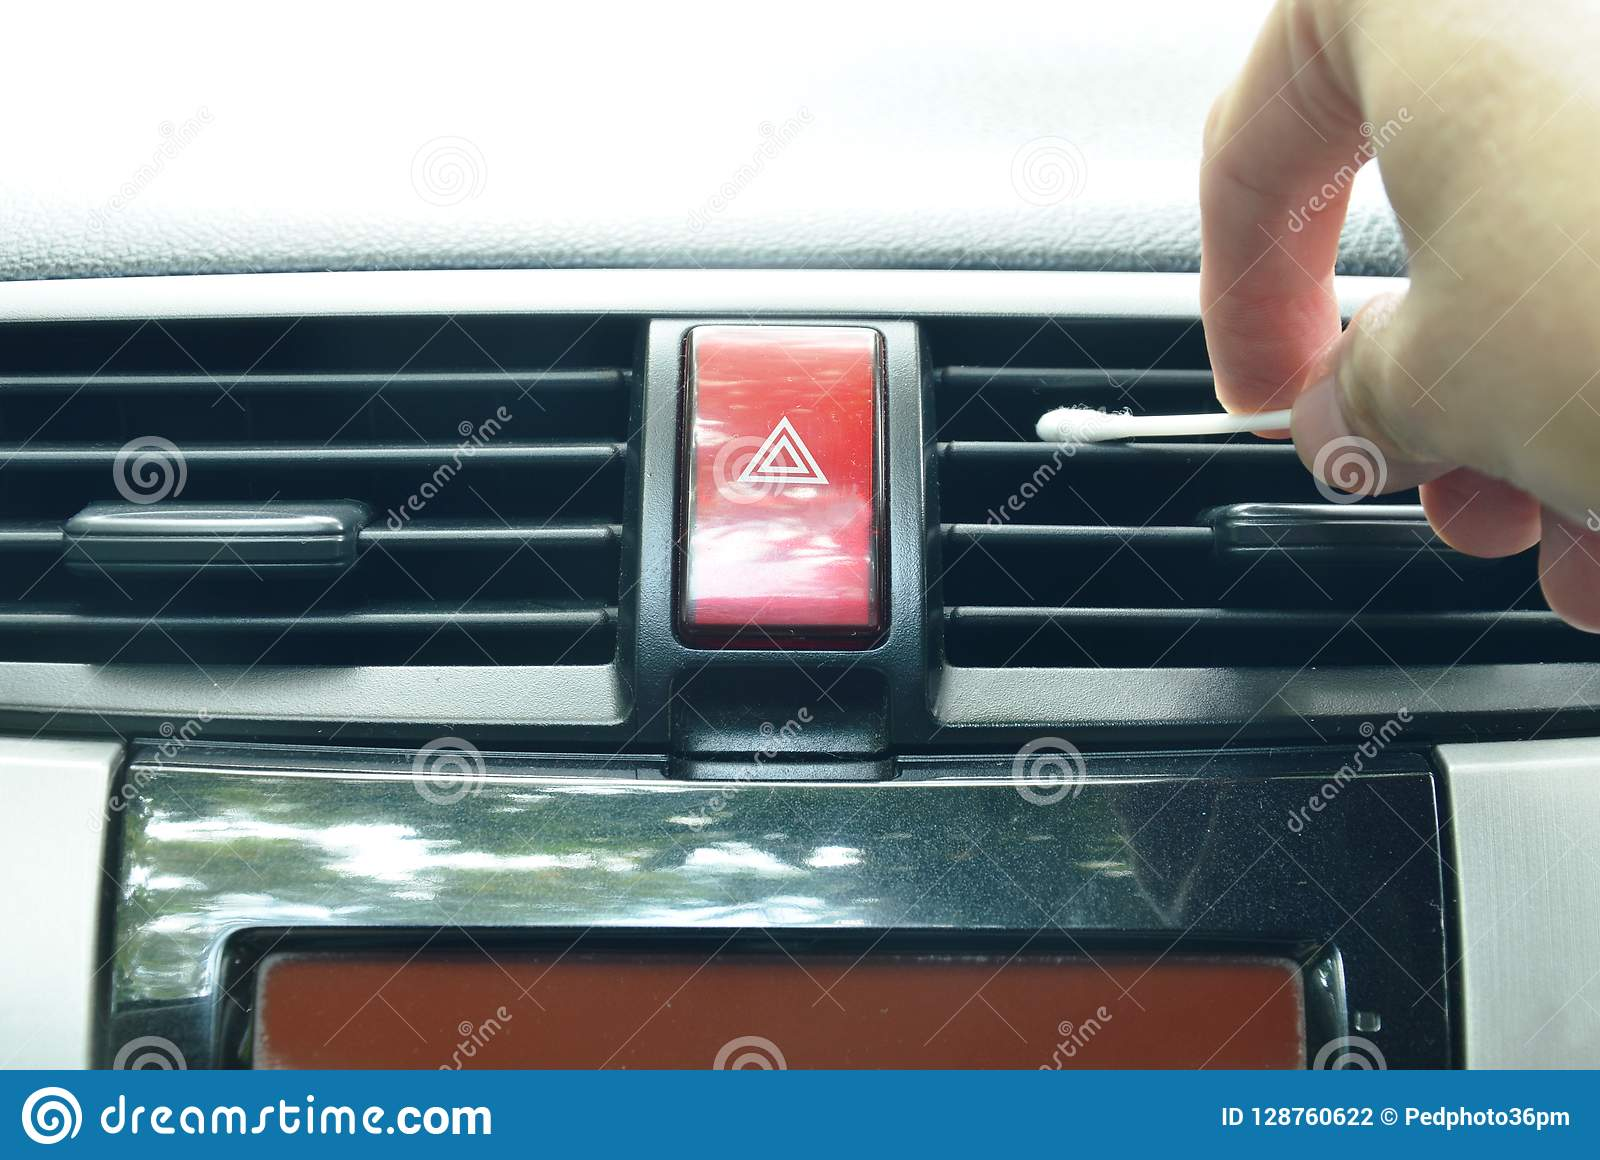 Hand Use Cotton Bud Cleaning Air Conditioner Hole In Car Stock Photo - Image of conditioner. automatic: 128760622